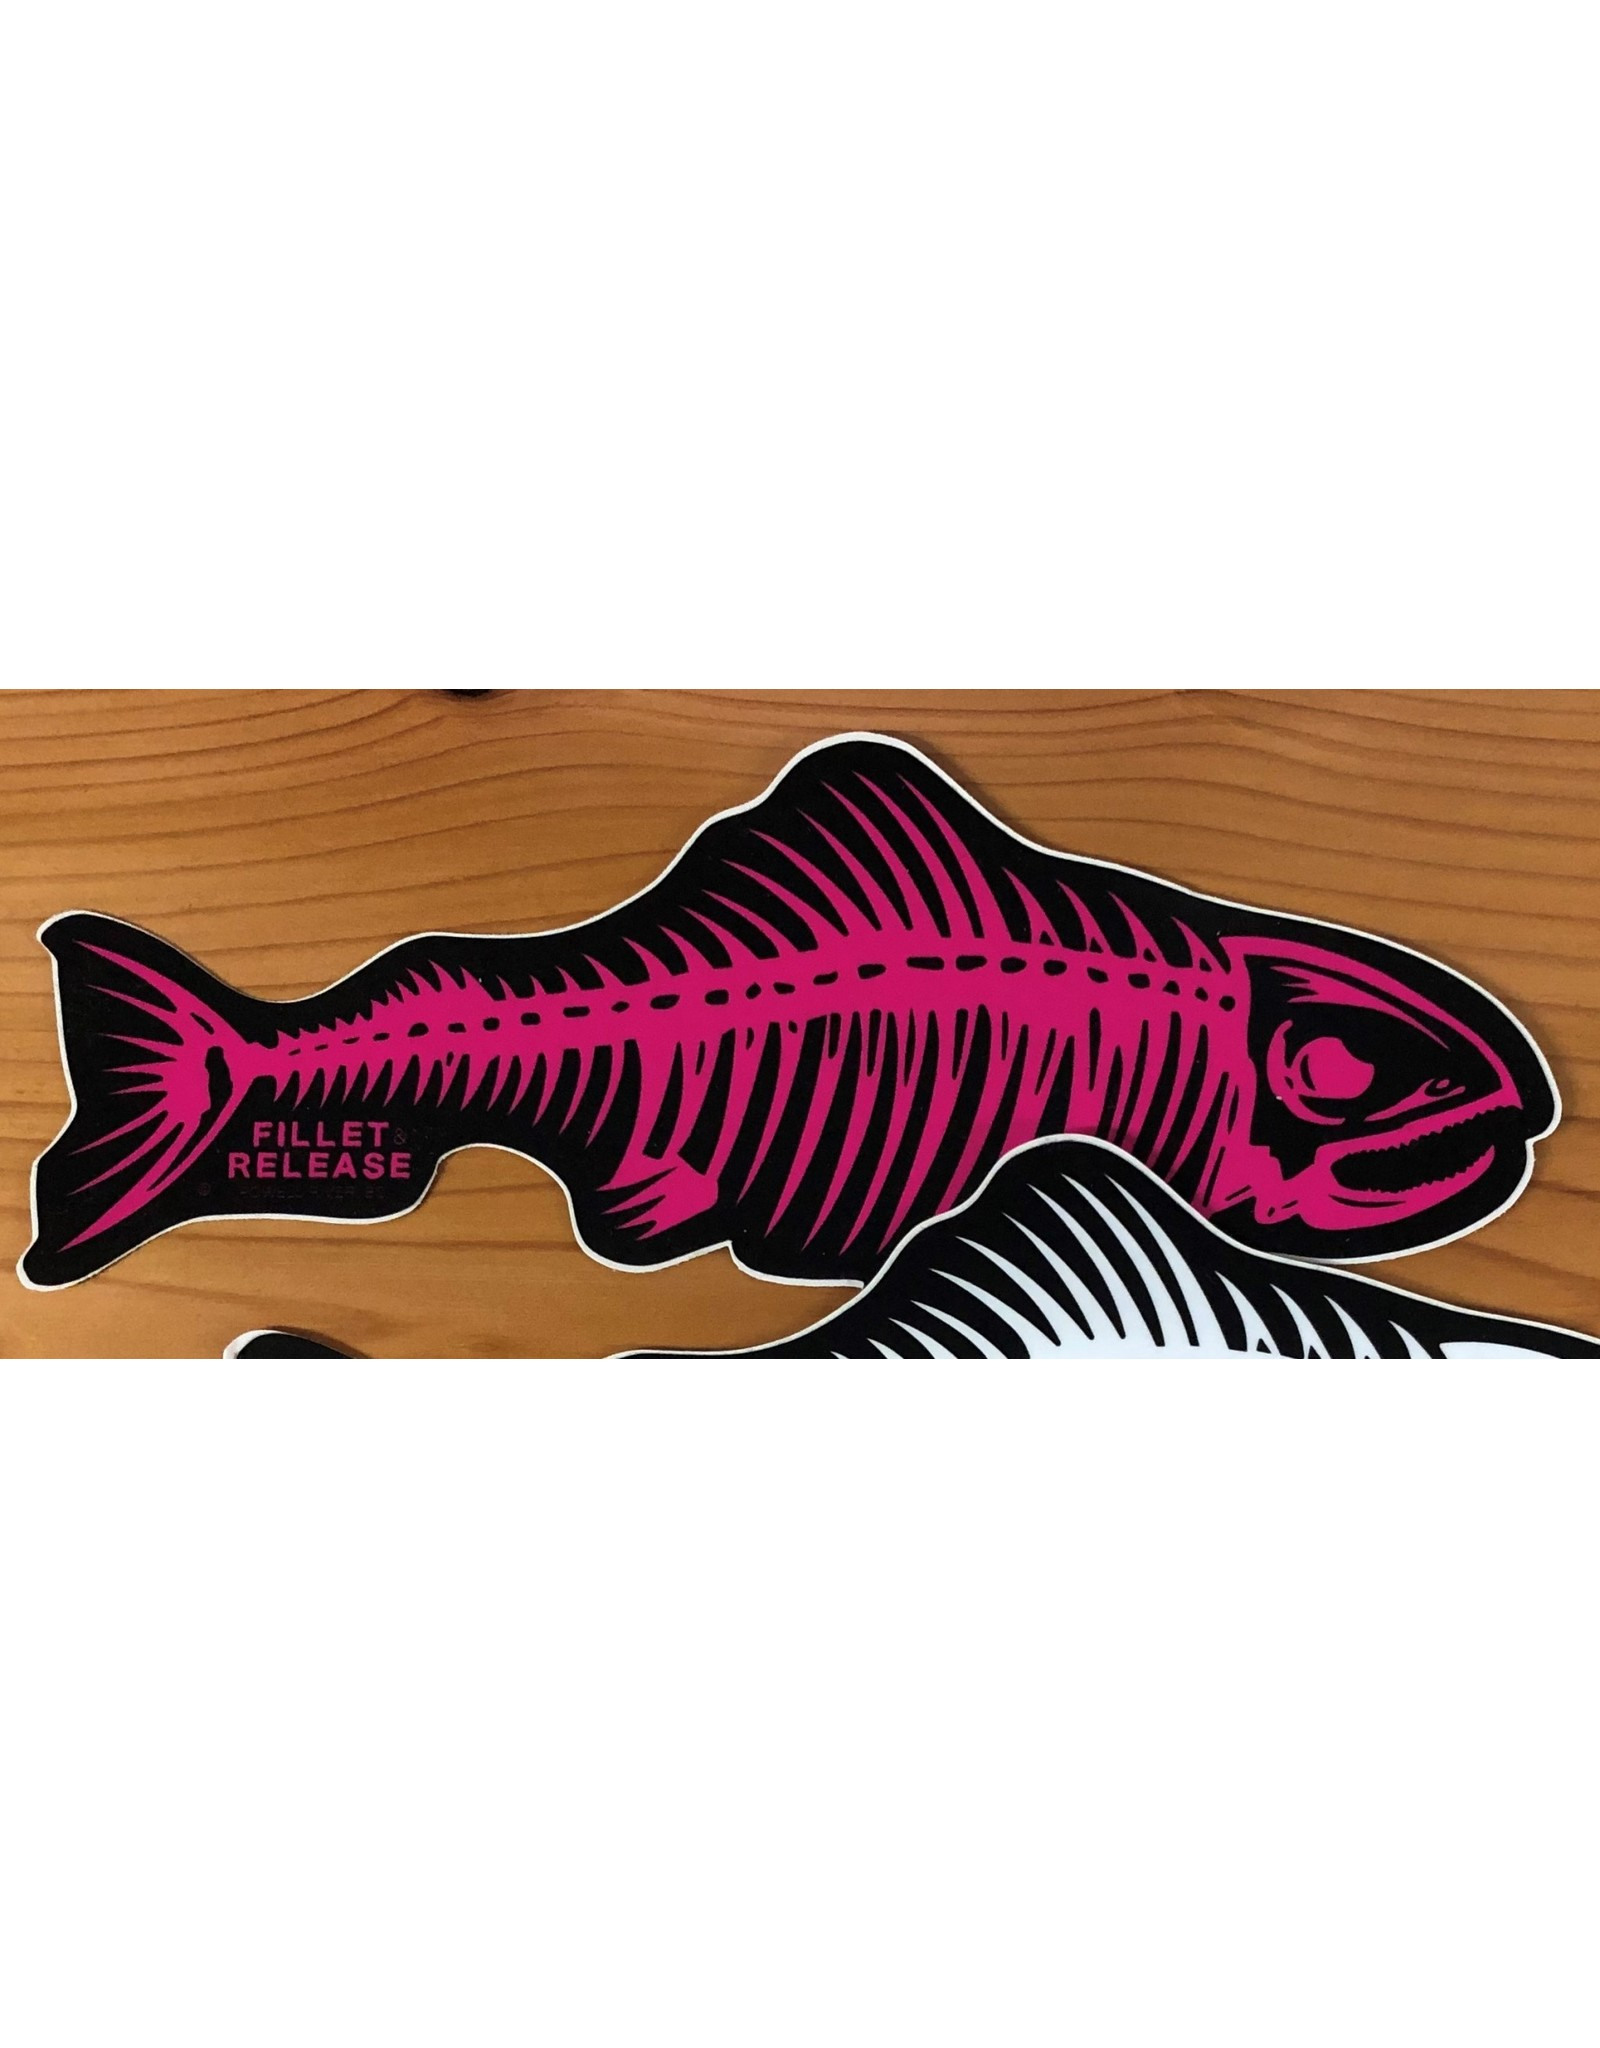 PRO LARGE FILLET & RELEASE FISH DECAL